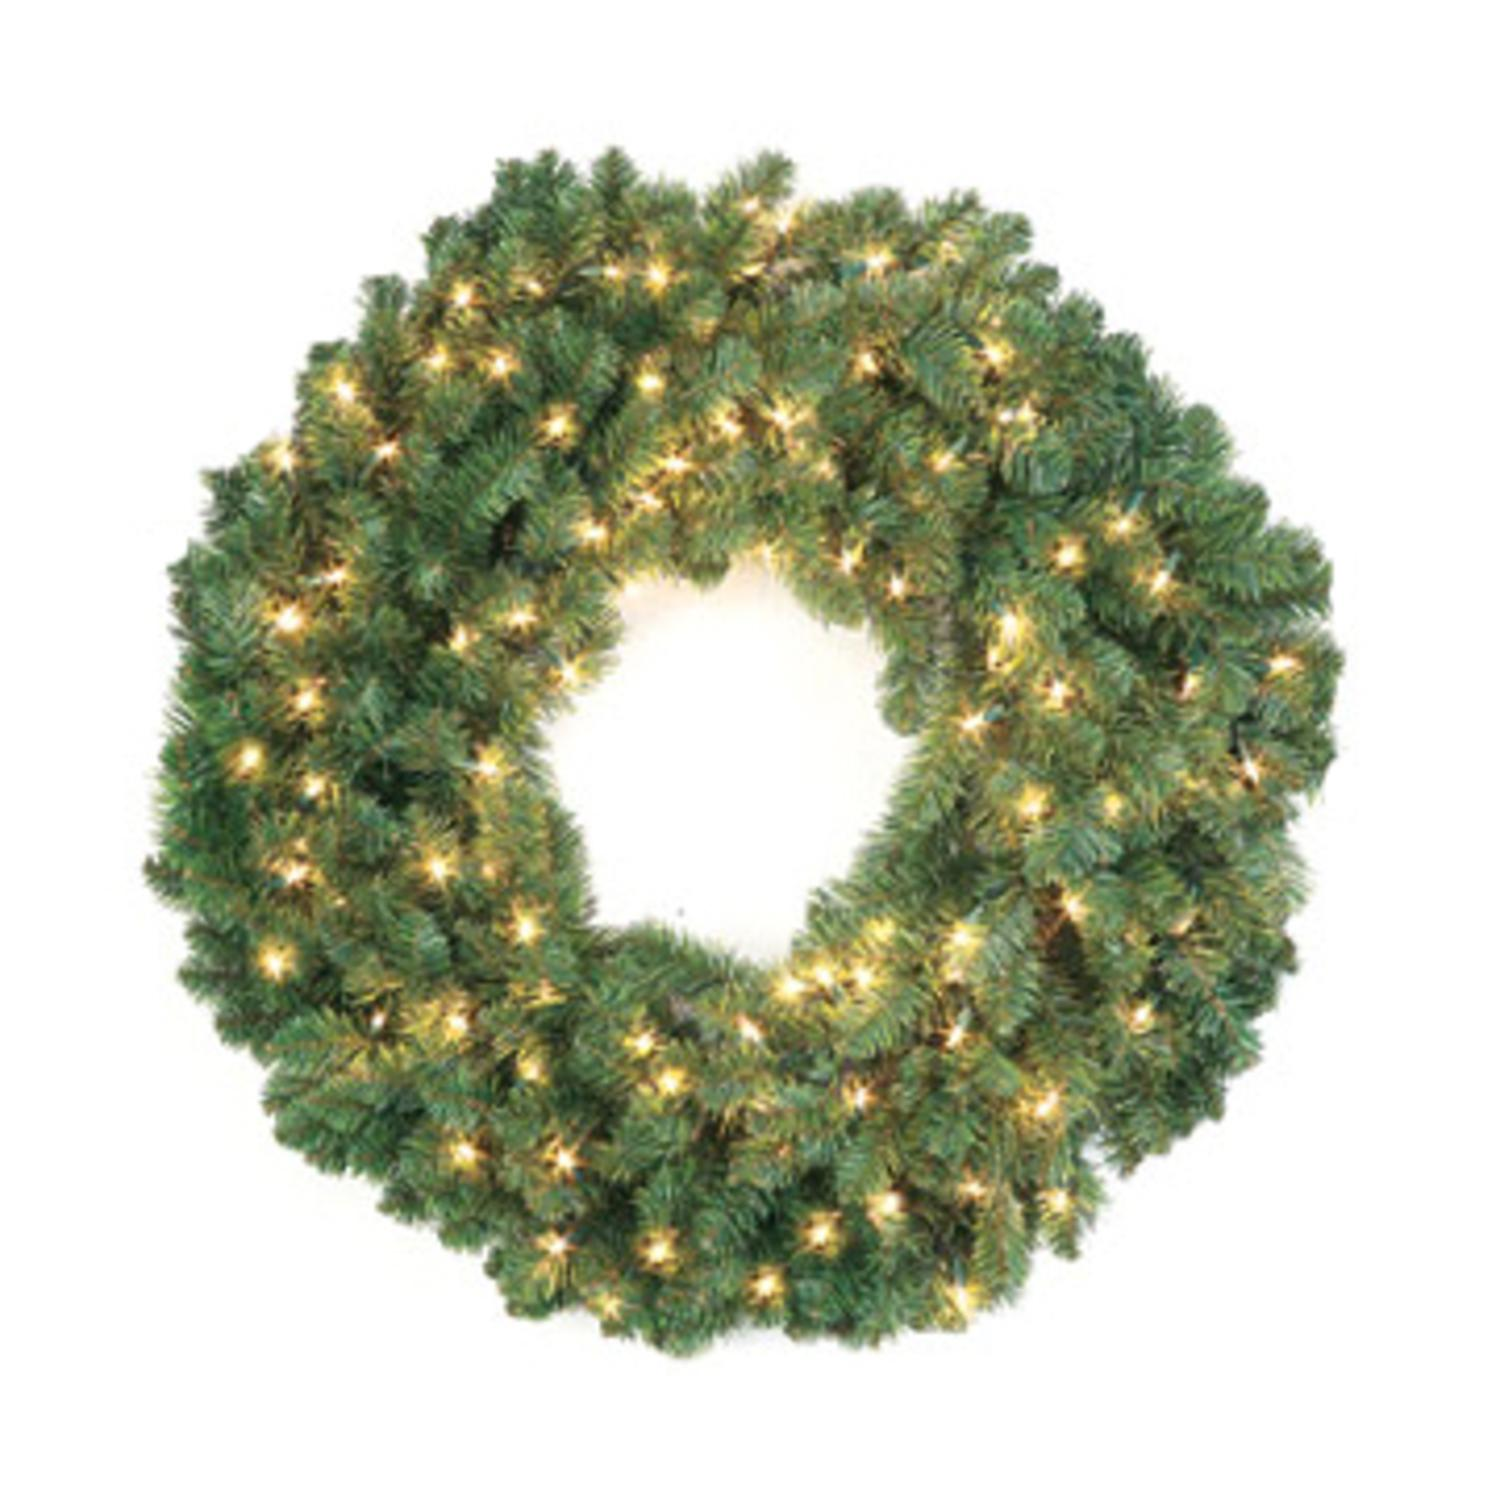 "Set of 2 Pre-Lit Douglas Fir Artificial Christmas Wreaths 24"" - Clear Lights"